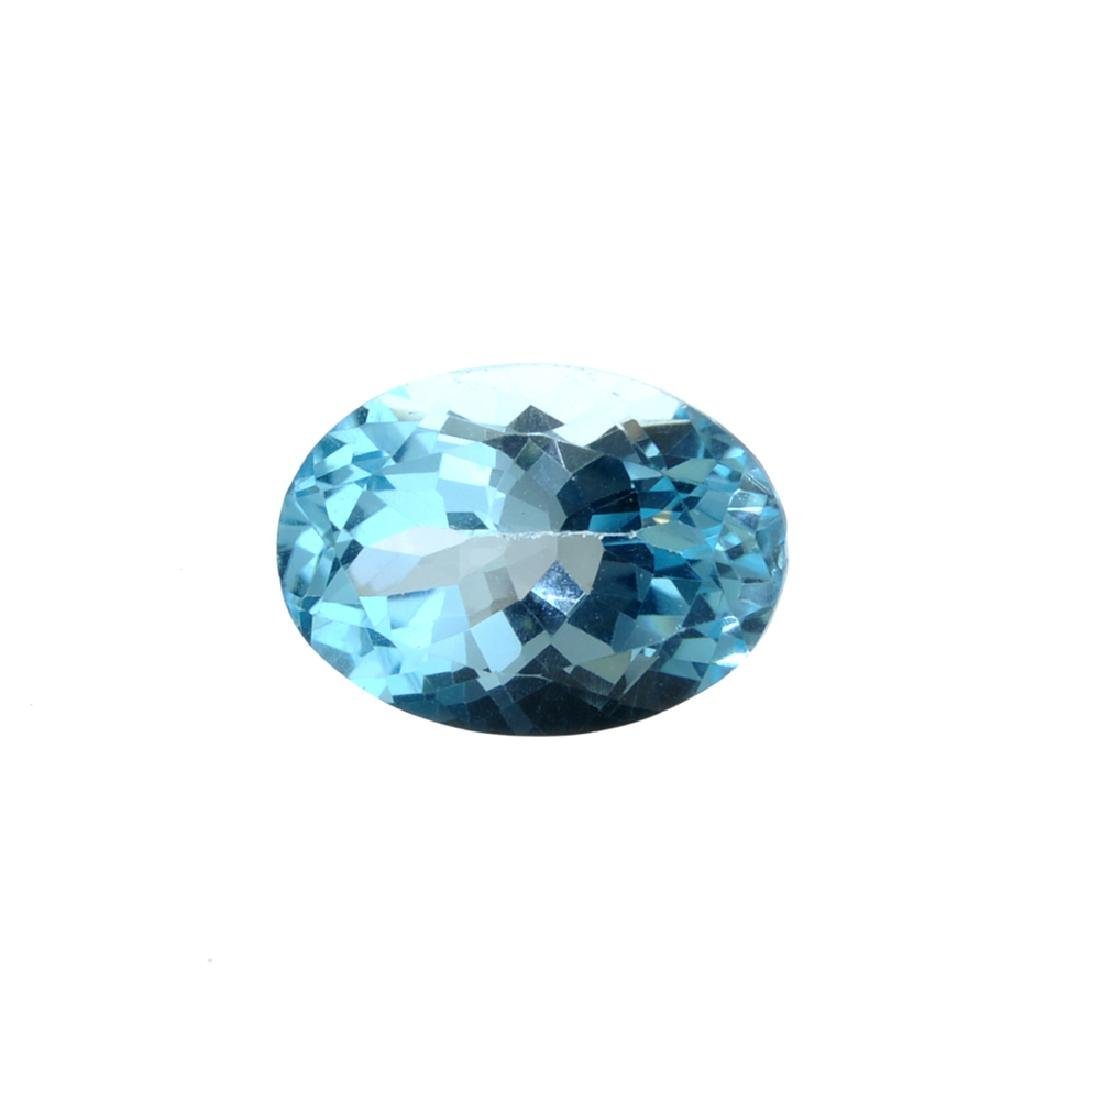 APP: 0.4k 14.19CT Oval Cut Blue Topaz Gemstone